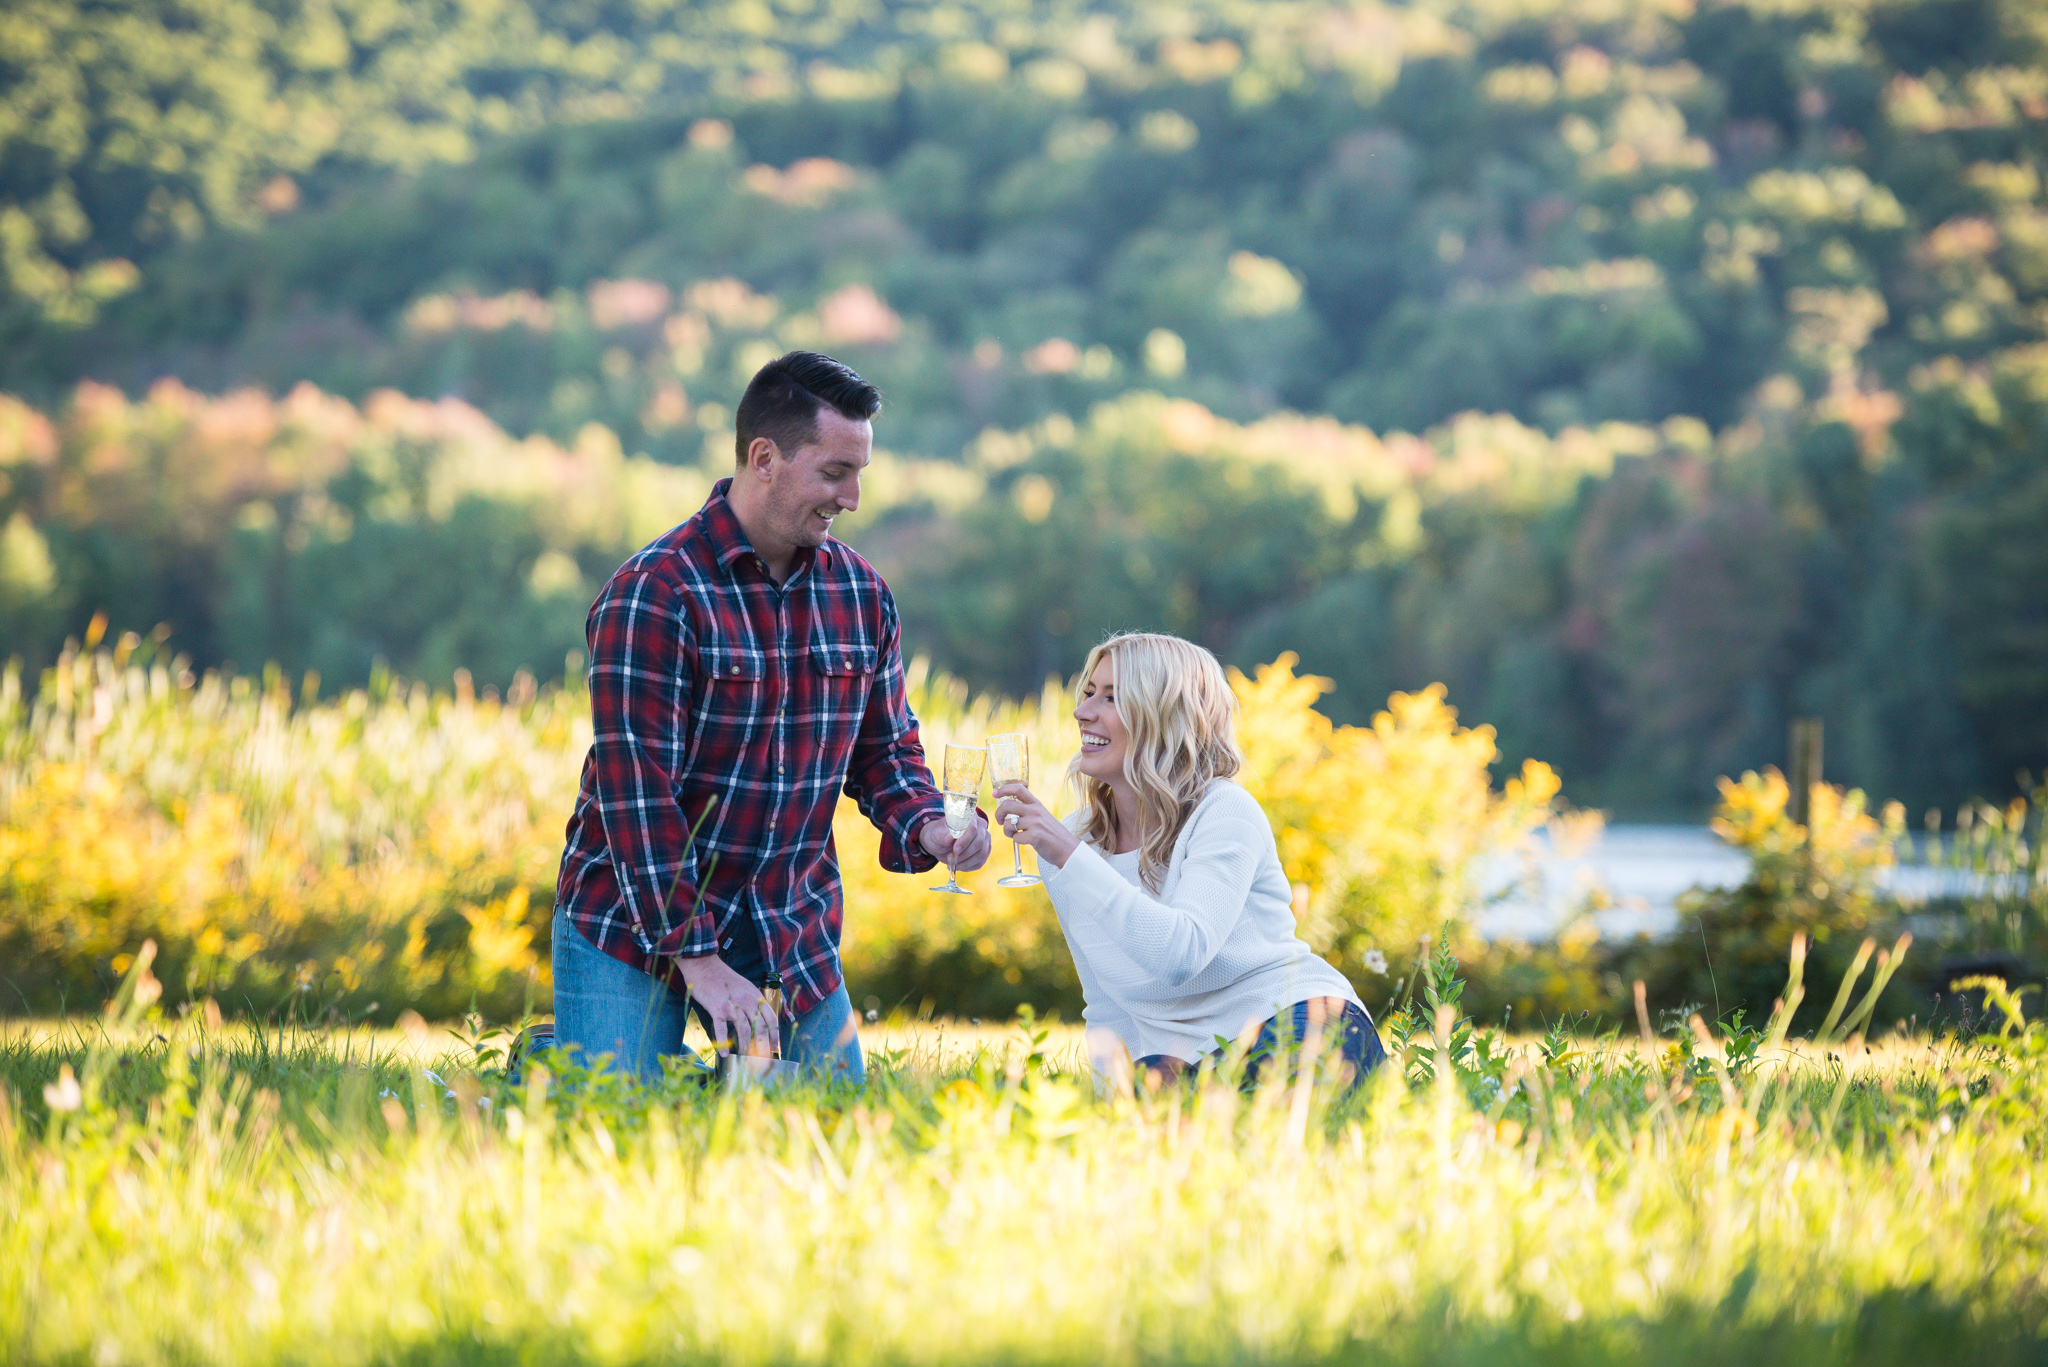 Mindy-Engagement-photography-wedding-photographer-northeast-PA-Scranton-Poconos-25.jpg